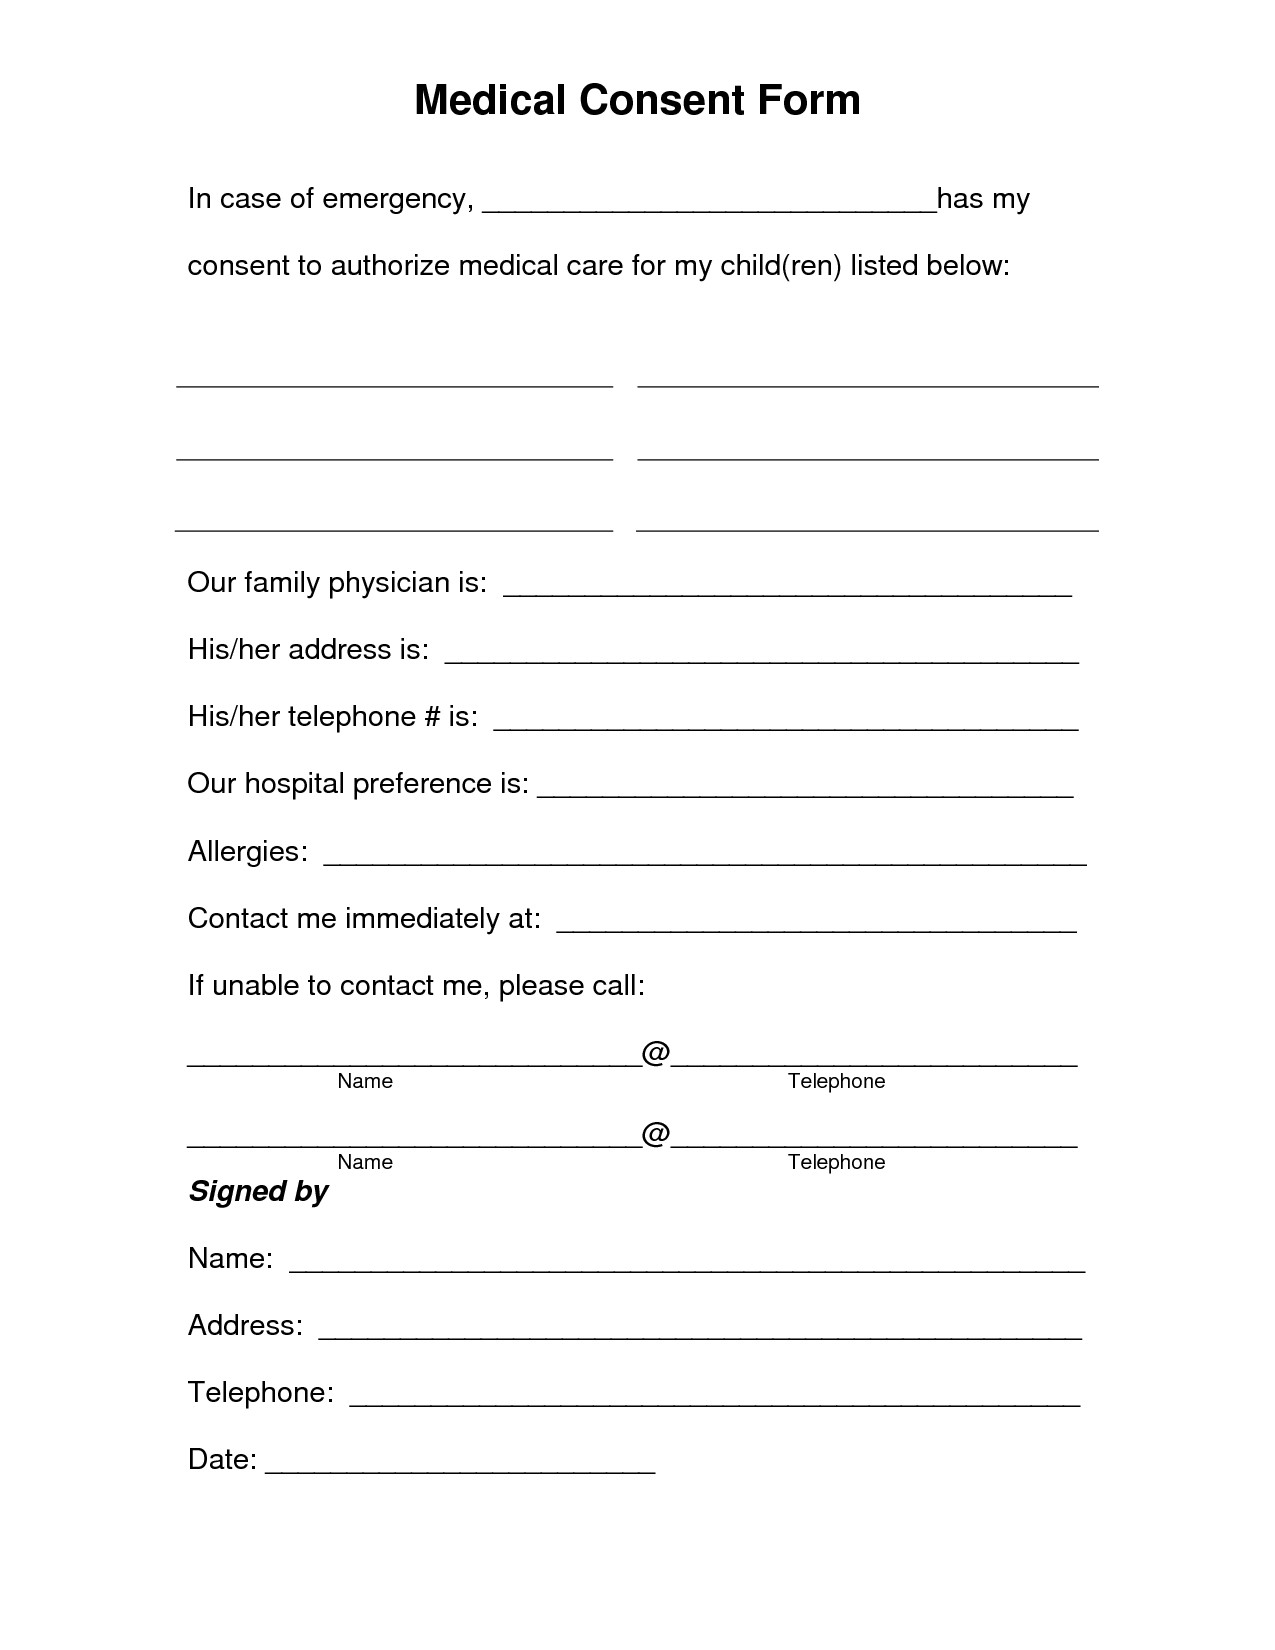 Medical Release form Template Free Printable Medical Consent form